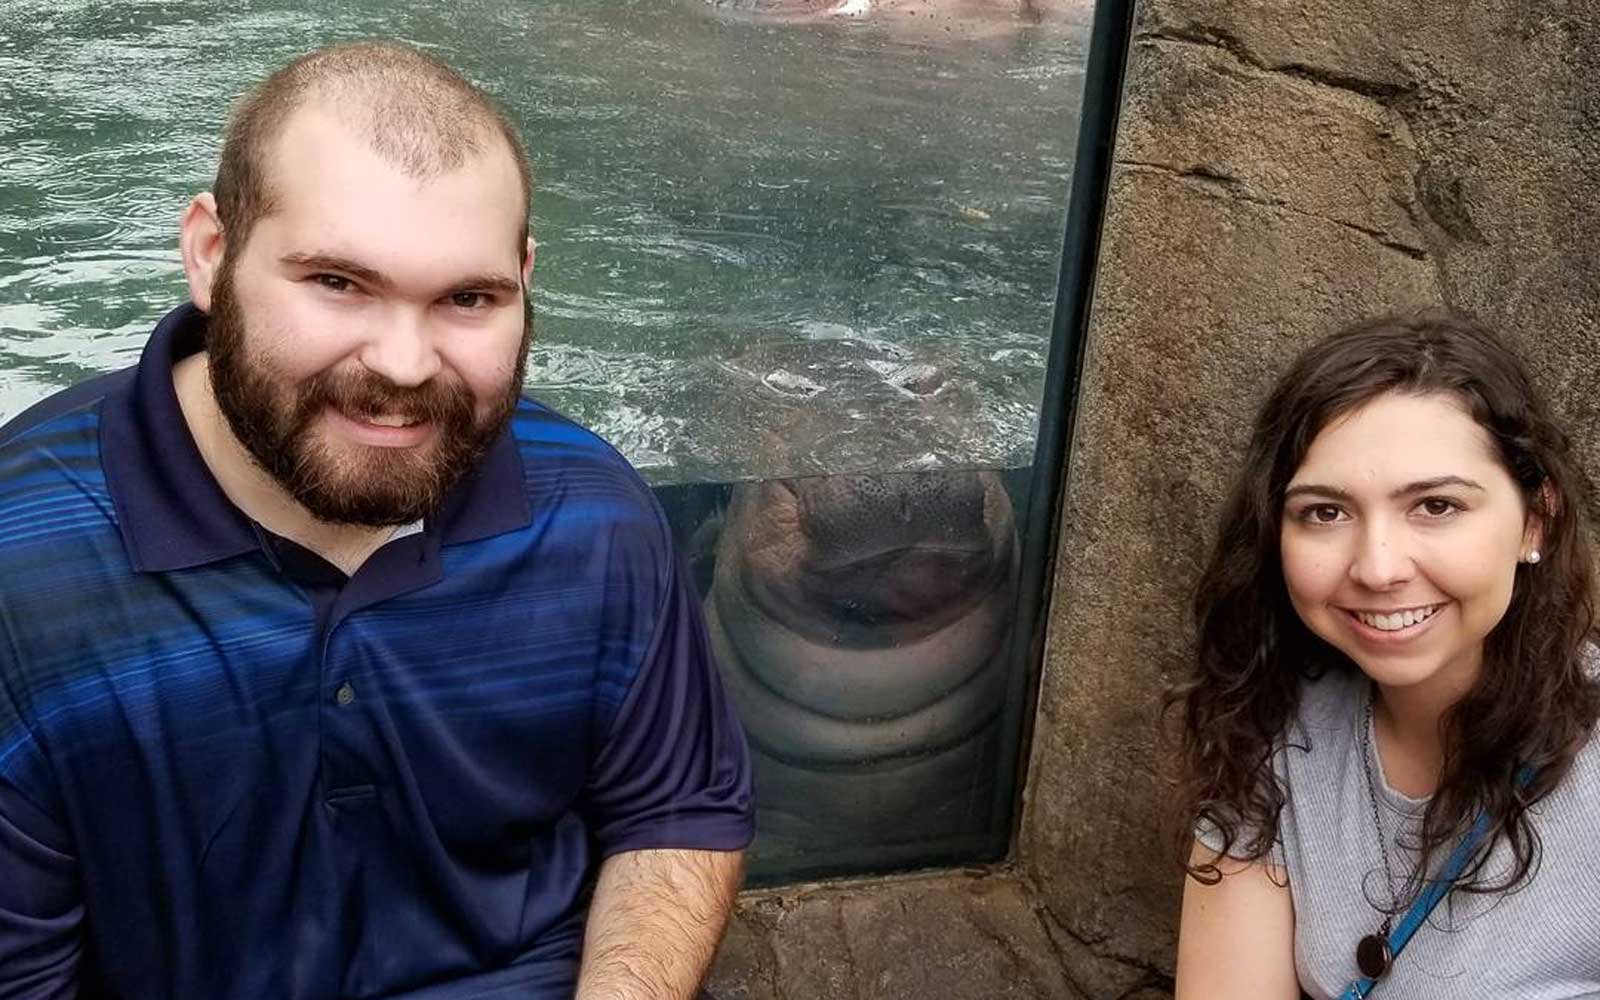 Couple Proposes At Zoo